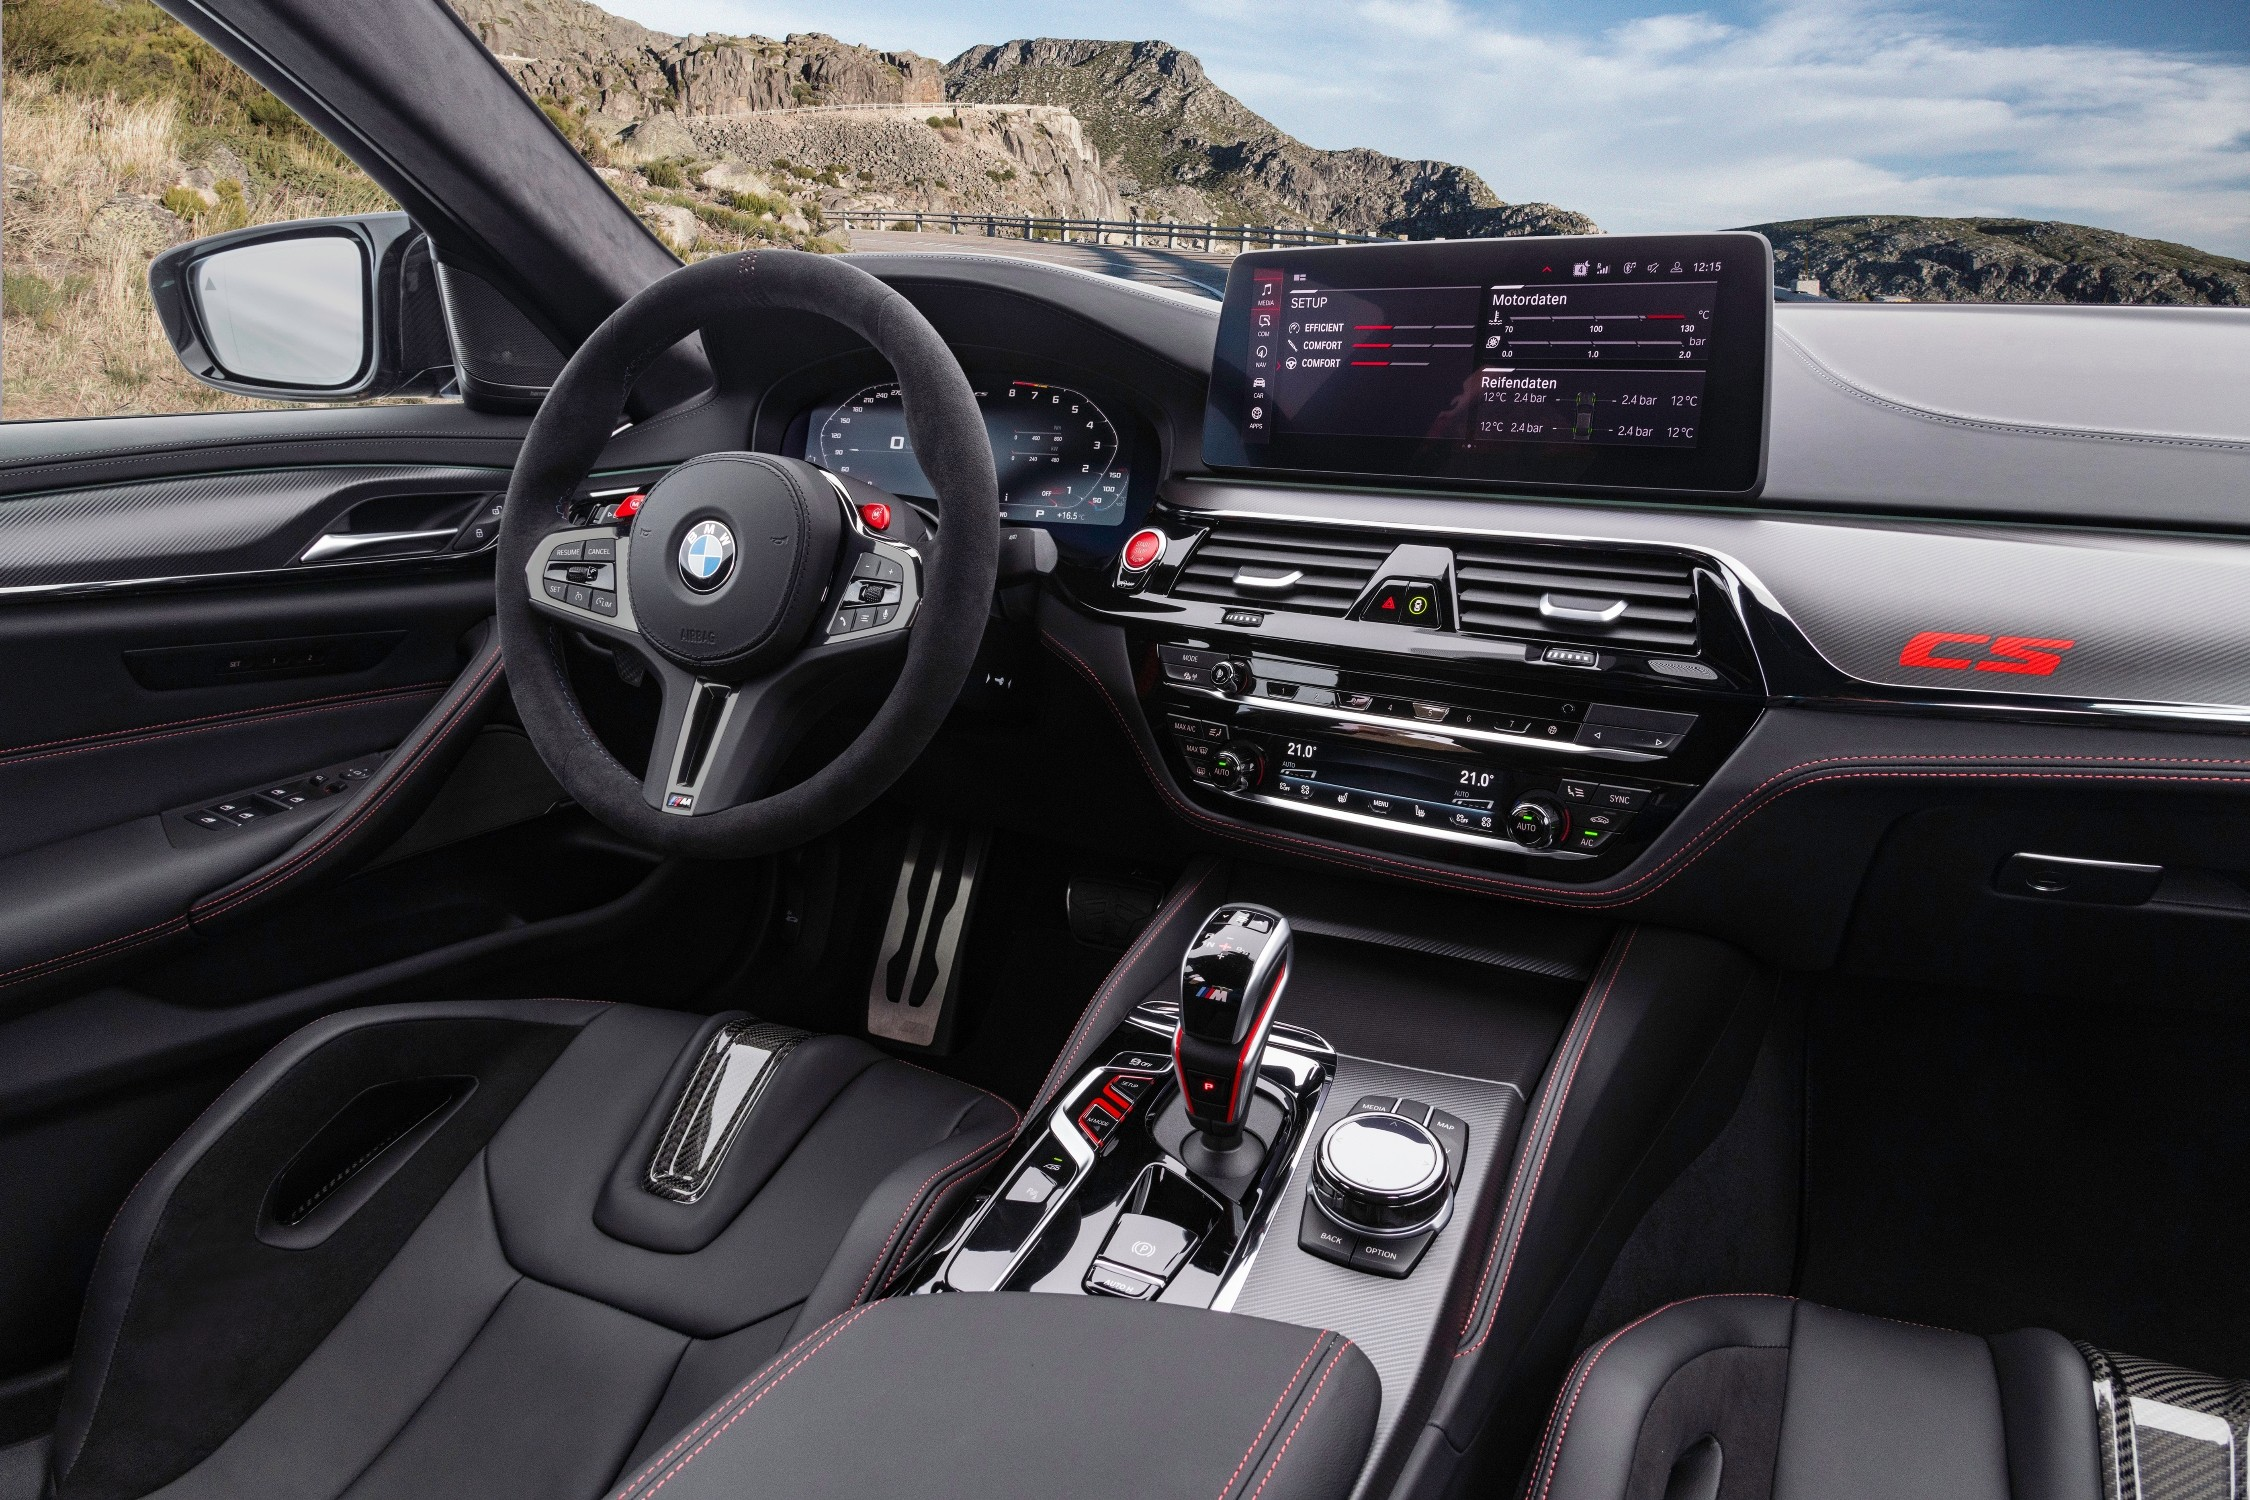 Other details on the interior include the CS mark on the seats, doors and dashboard. A new armrest fixed on the centre console replaces the previous one that opens.